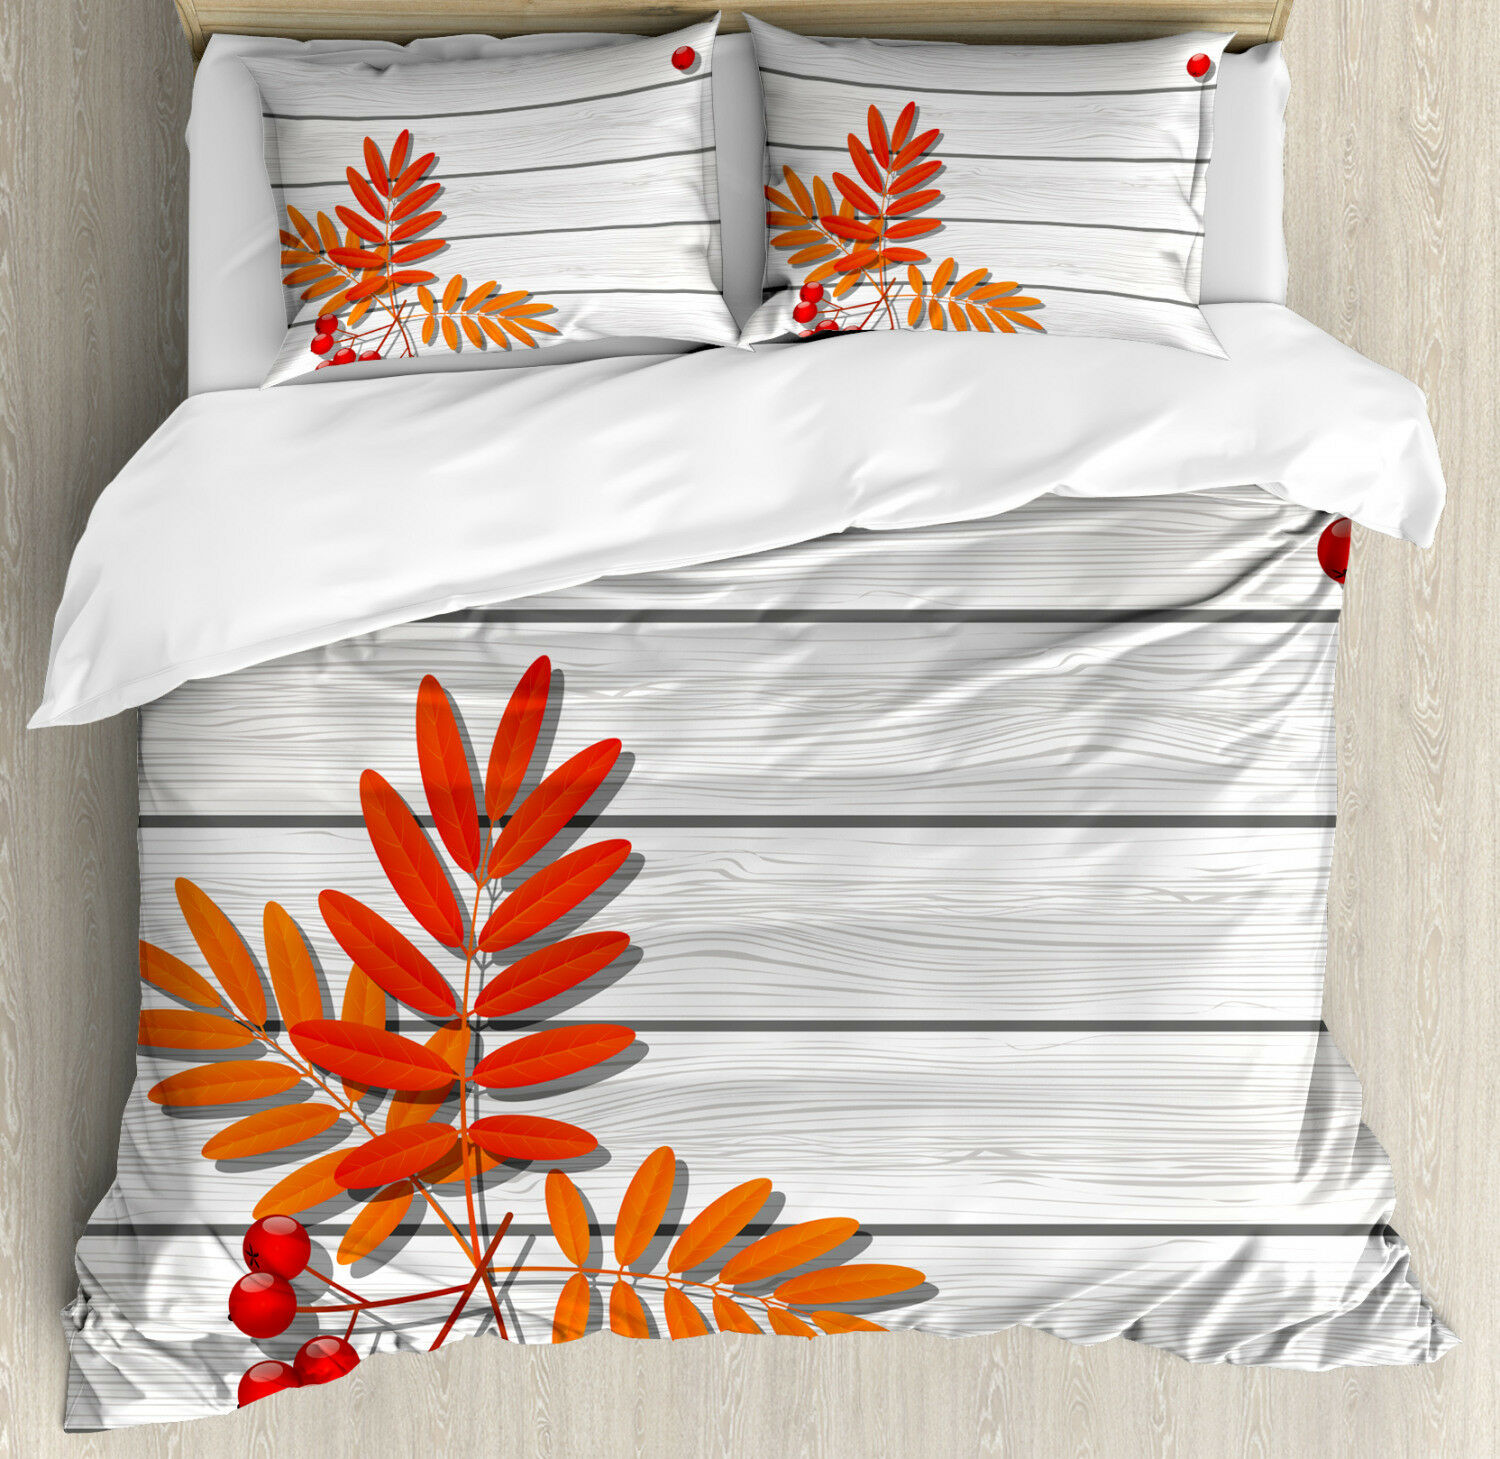 Rowan Duvet Cover Set with Pillow Shams Freshness Growth Ecology Print